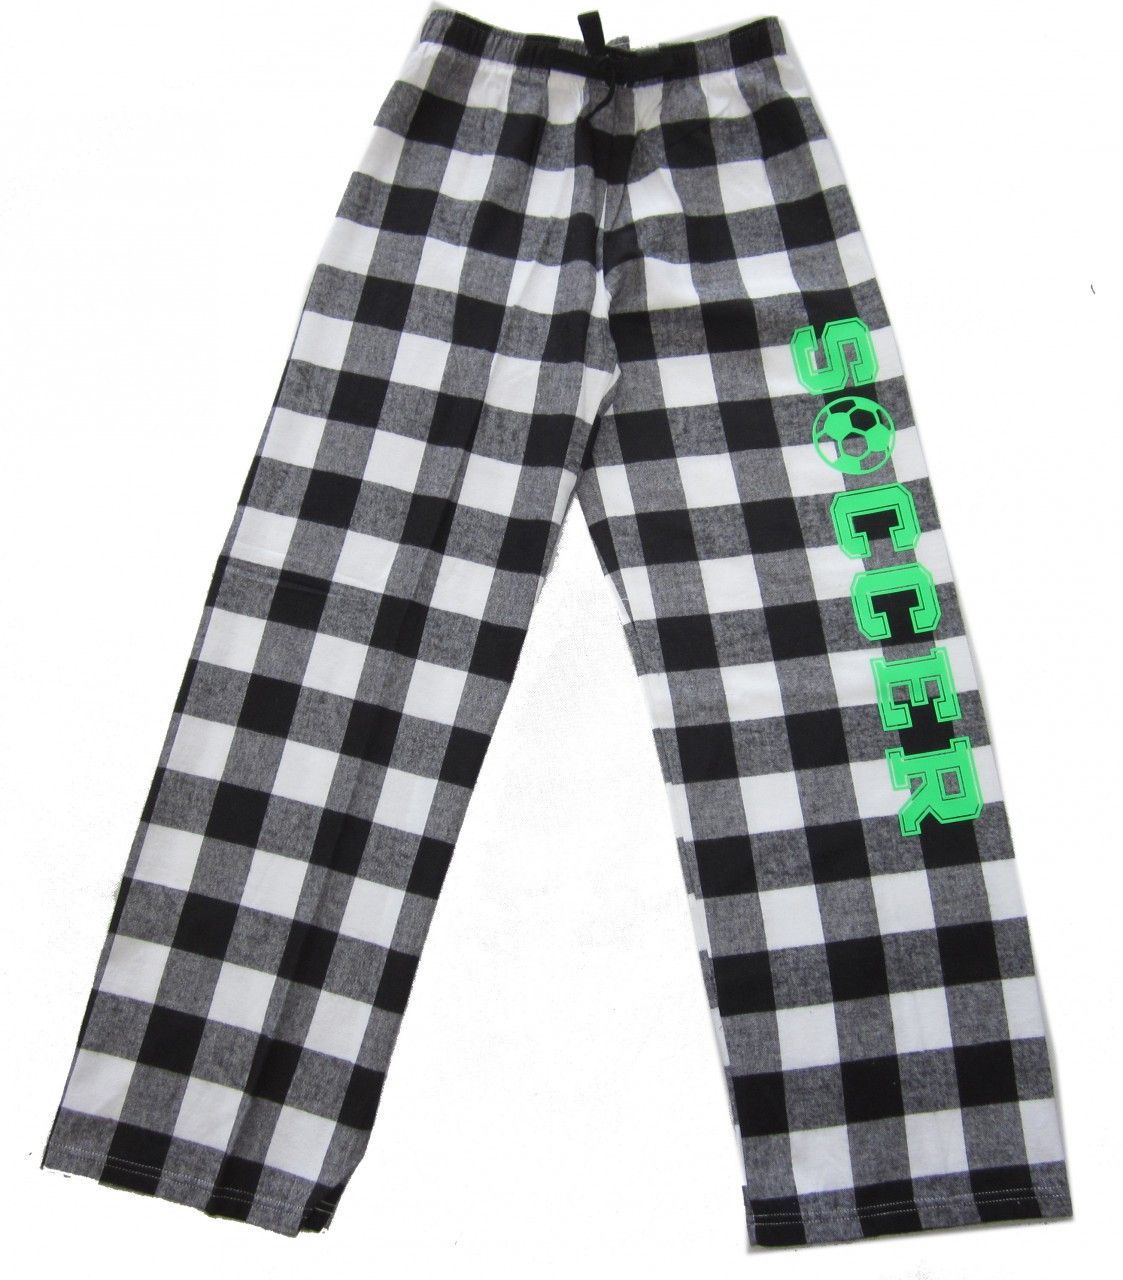 Soccer Flannel Pants - Black / White Check with Neon Green Logo